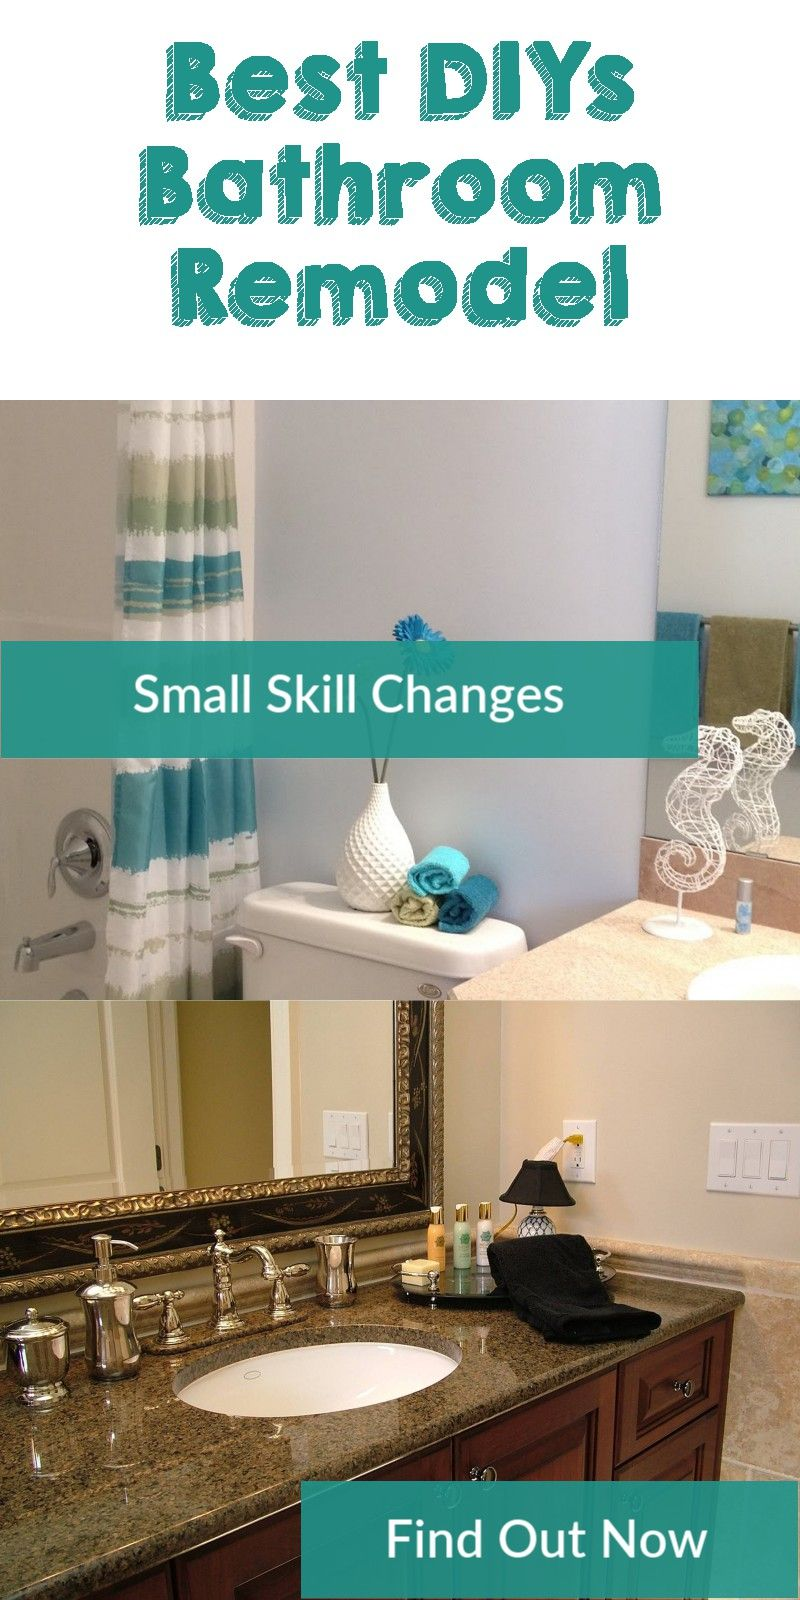 Always Room For Improvement Could These Tips Make Your House Even Better You Can Get Additional Details At The Image Link